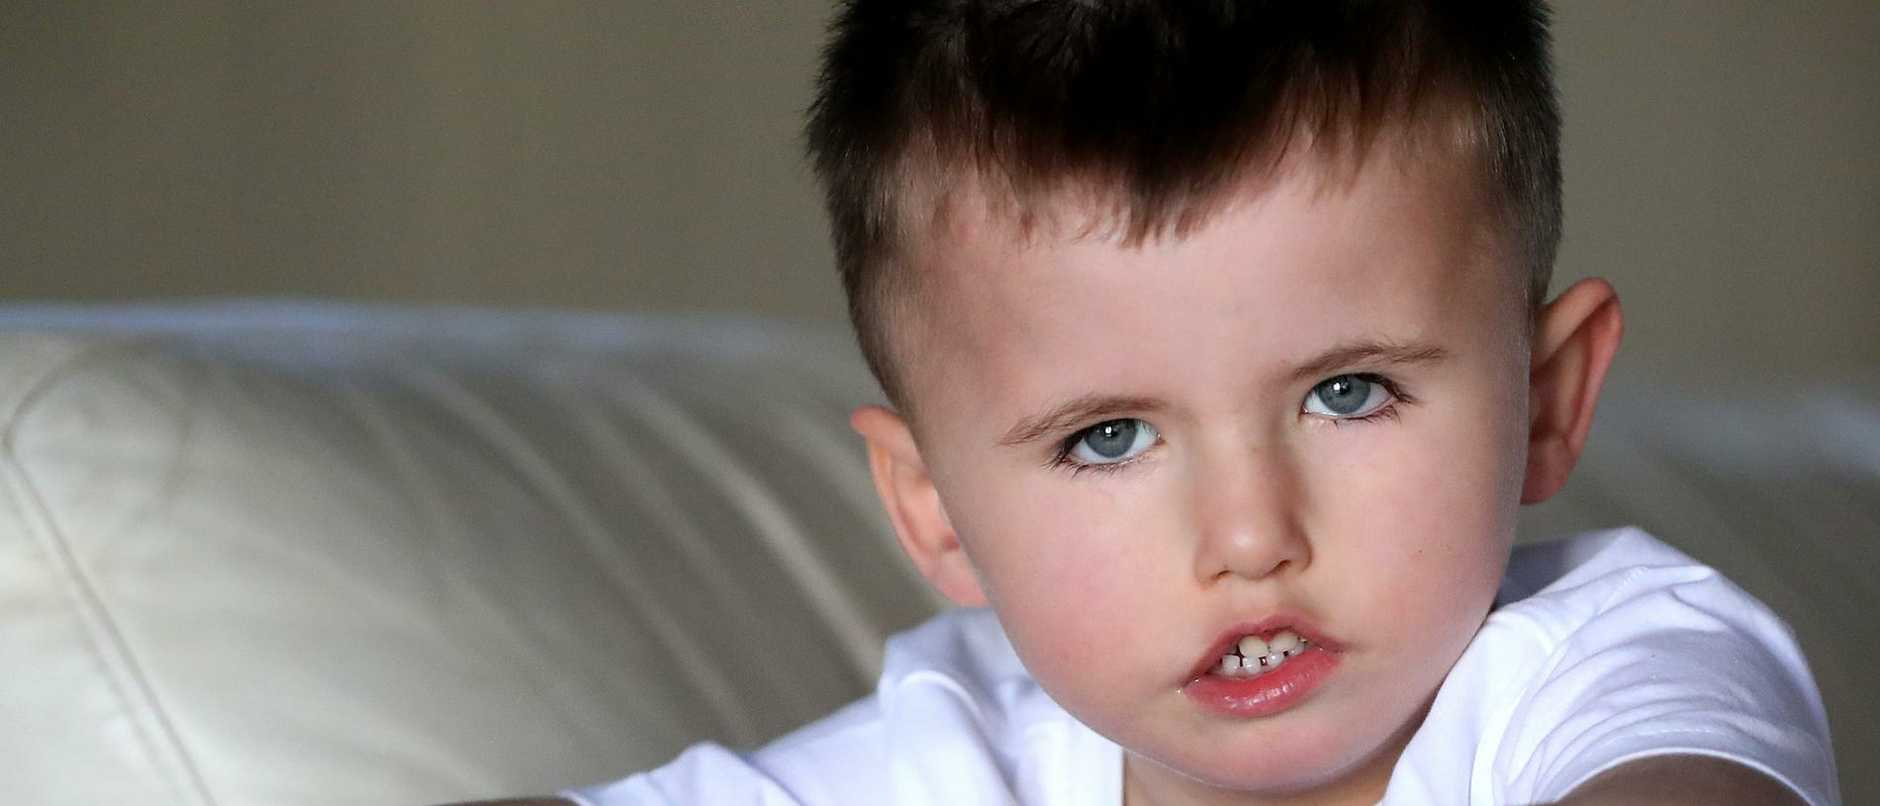 Levi Nikolic was born with a rare condition that causes facial paralysis.